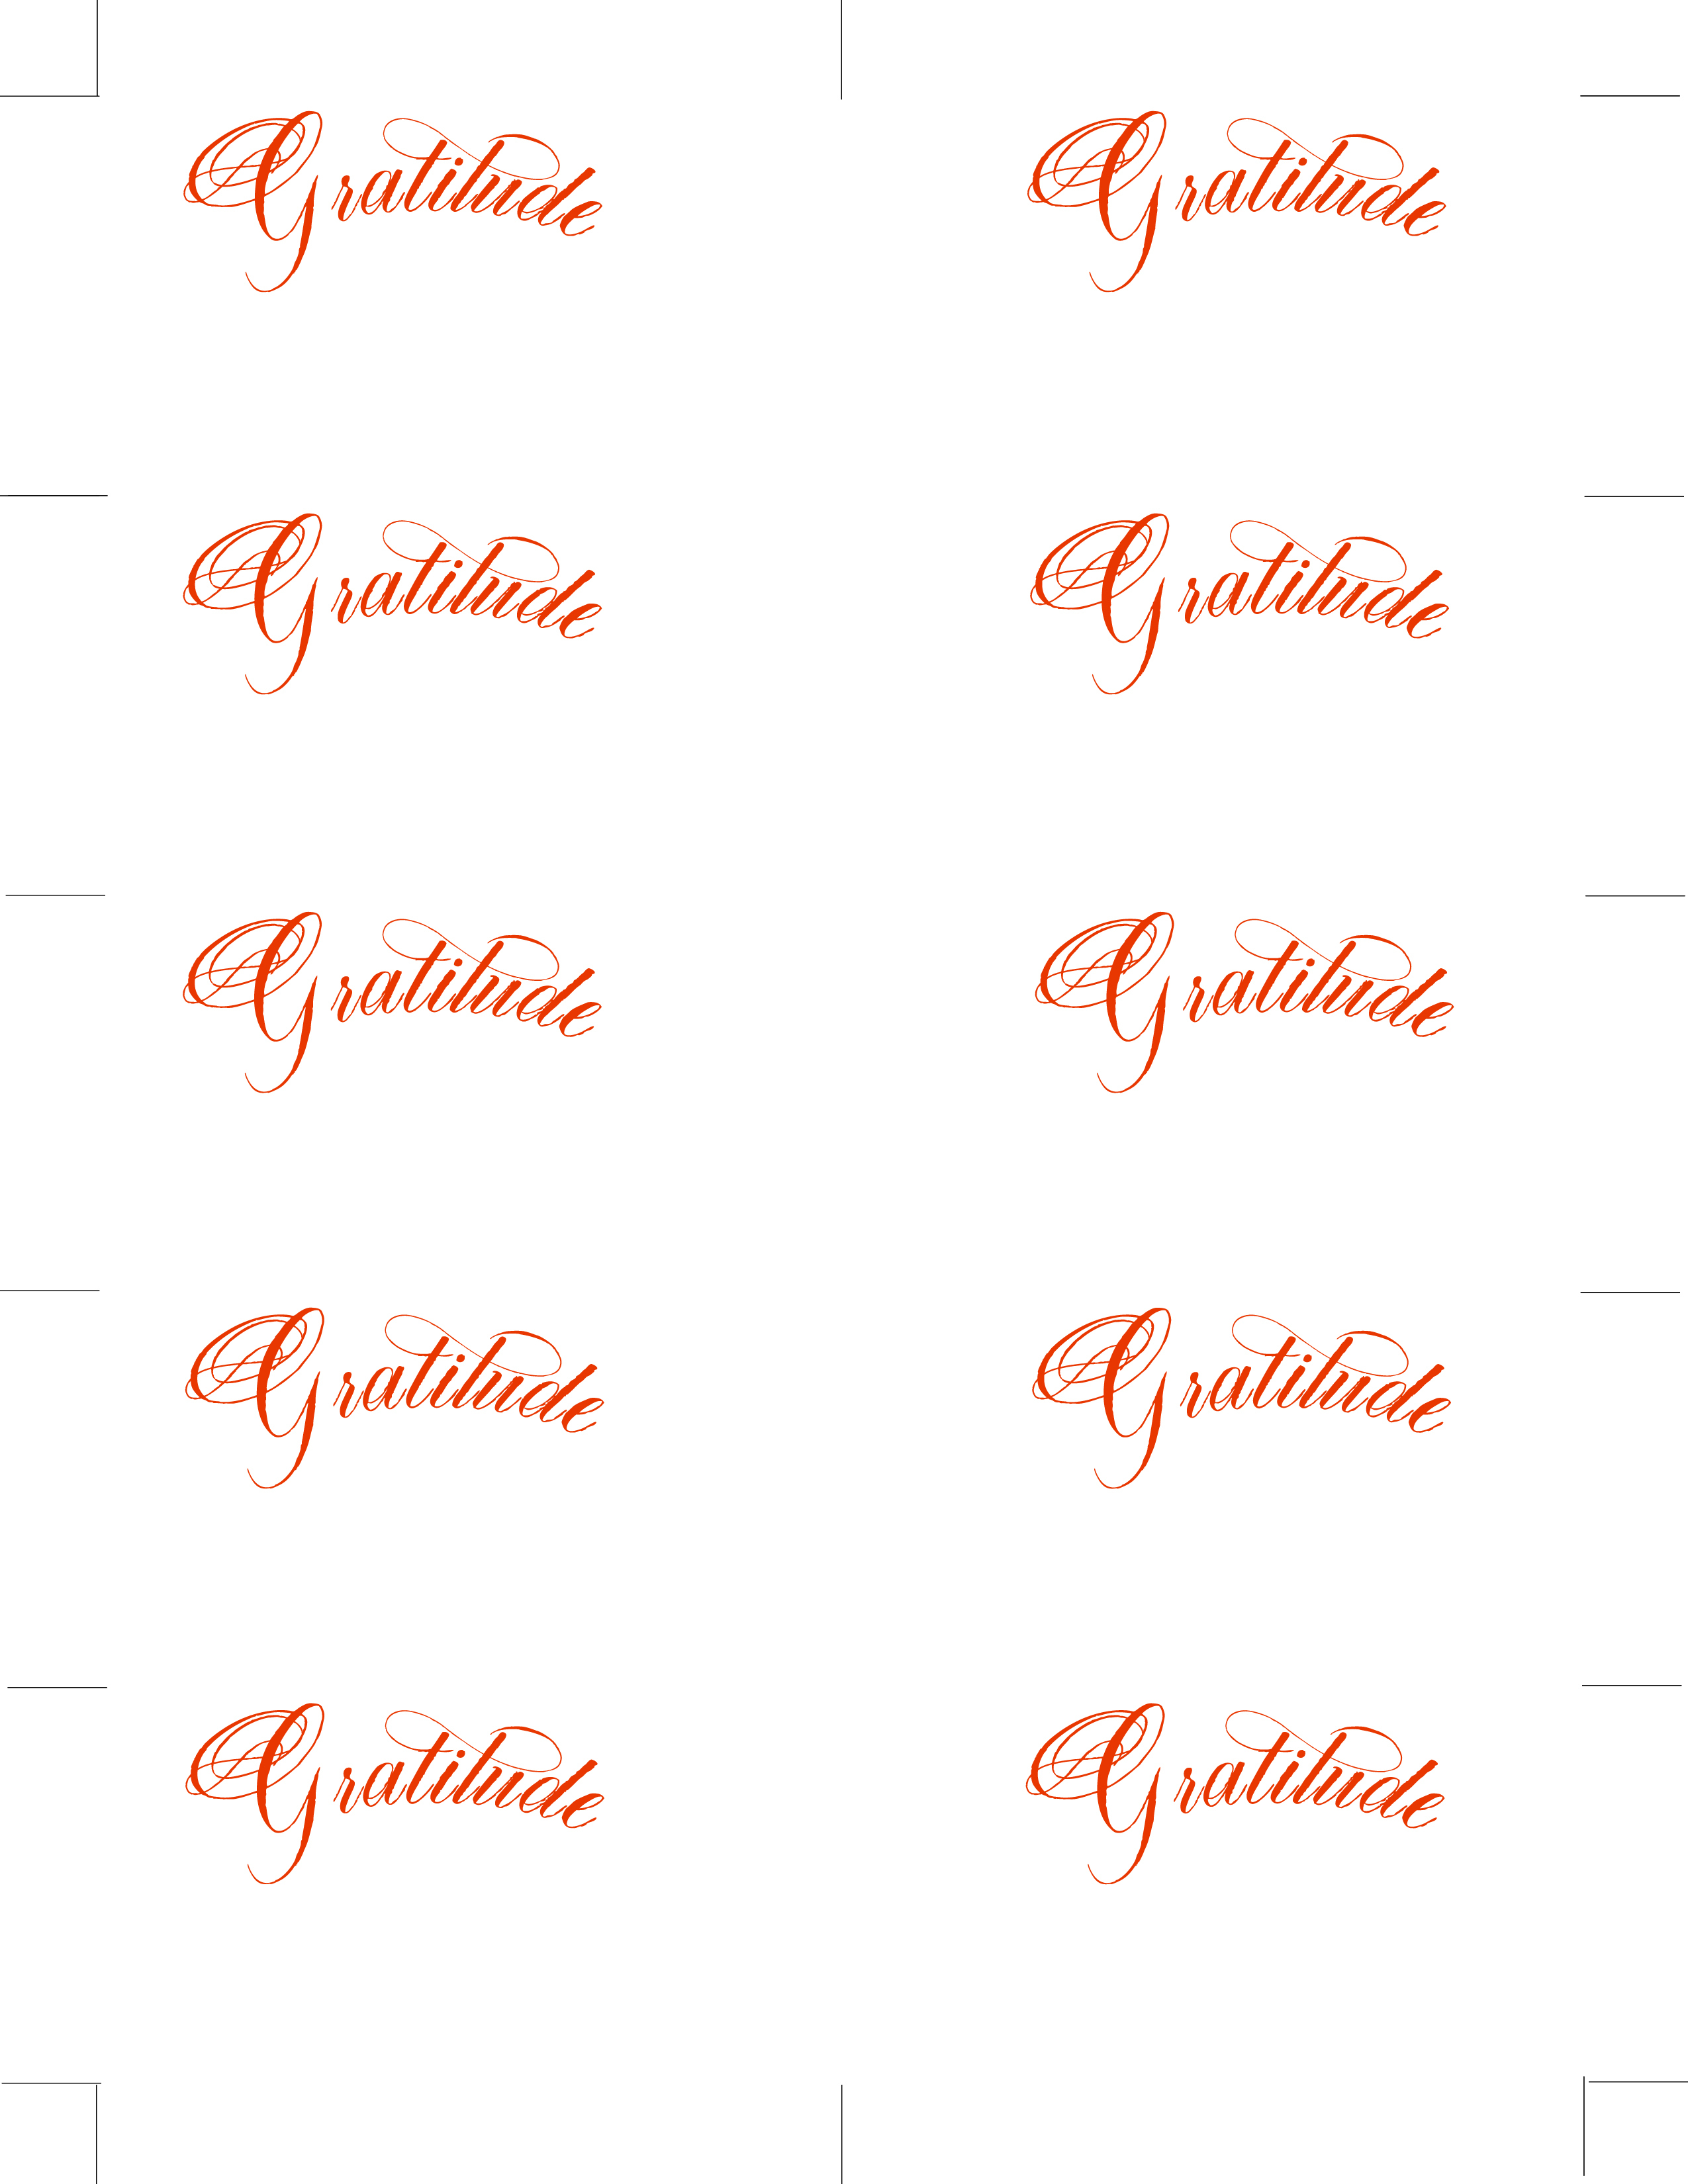 Free Printable Place Cards In Calligraphy Font: Gratitude - Free Printable Place Cards